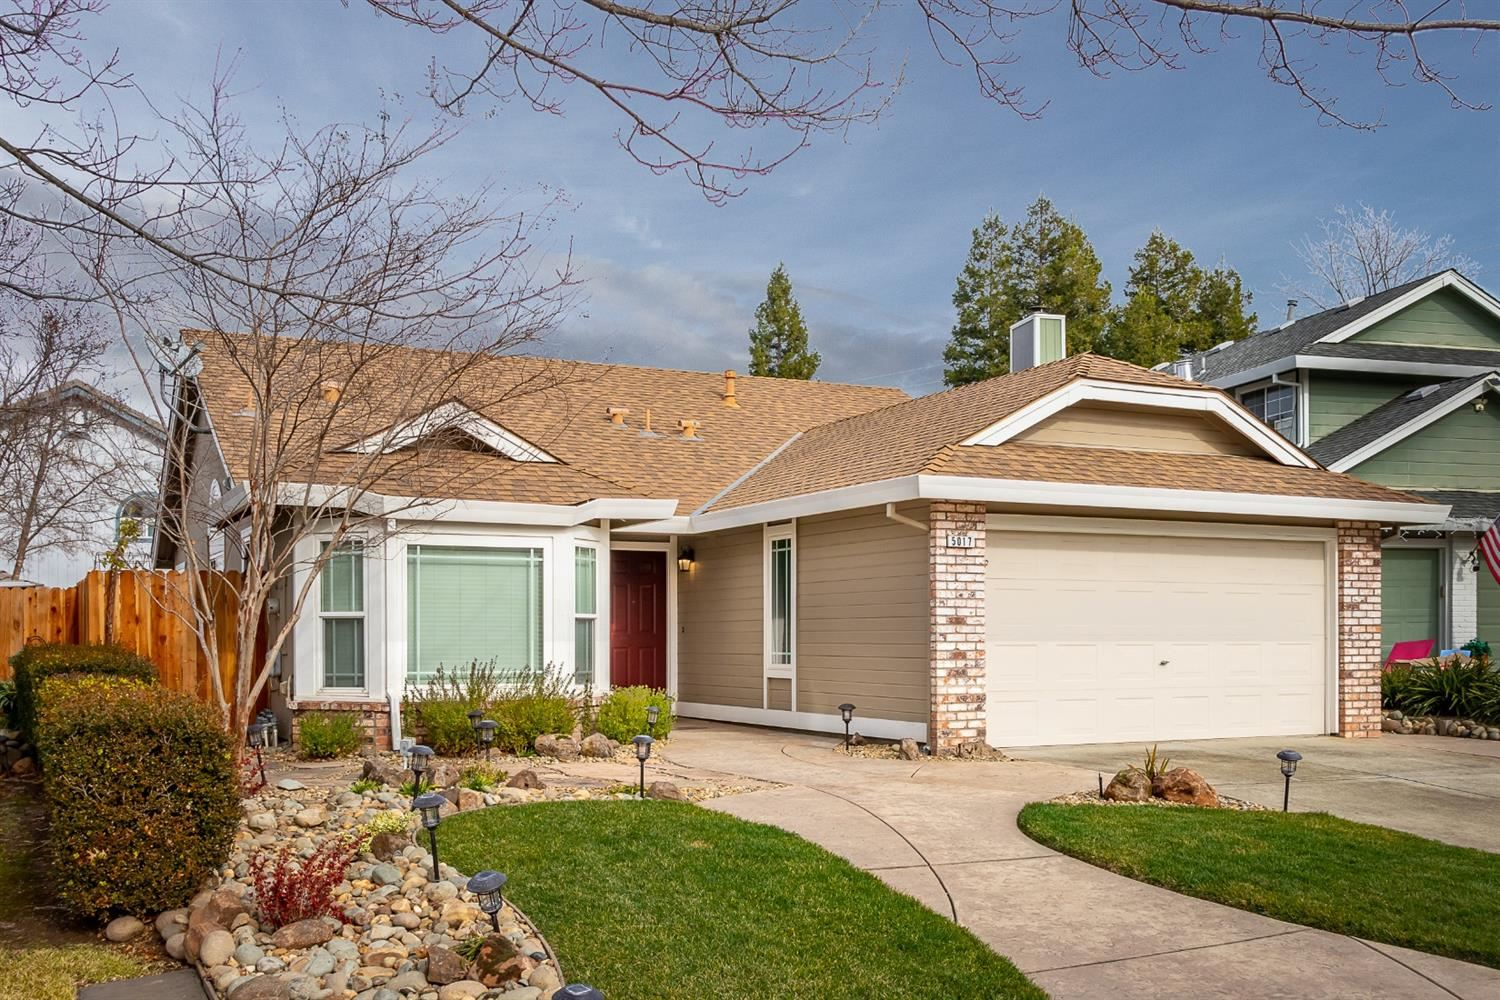 Antelope Homes for Sale